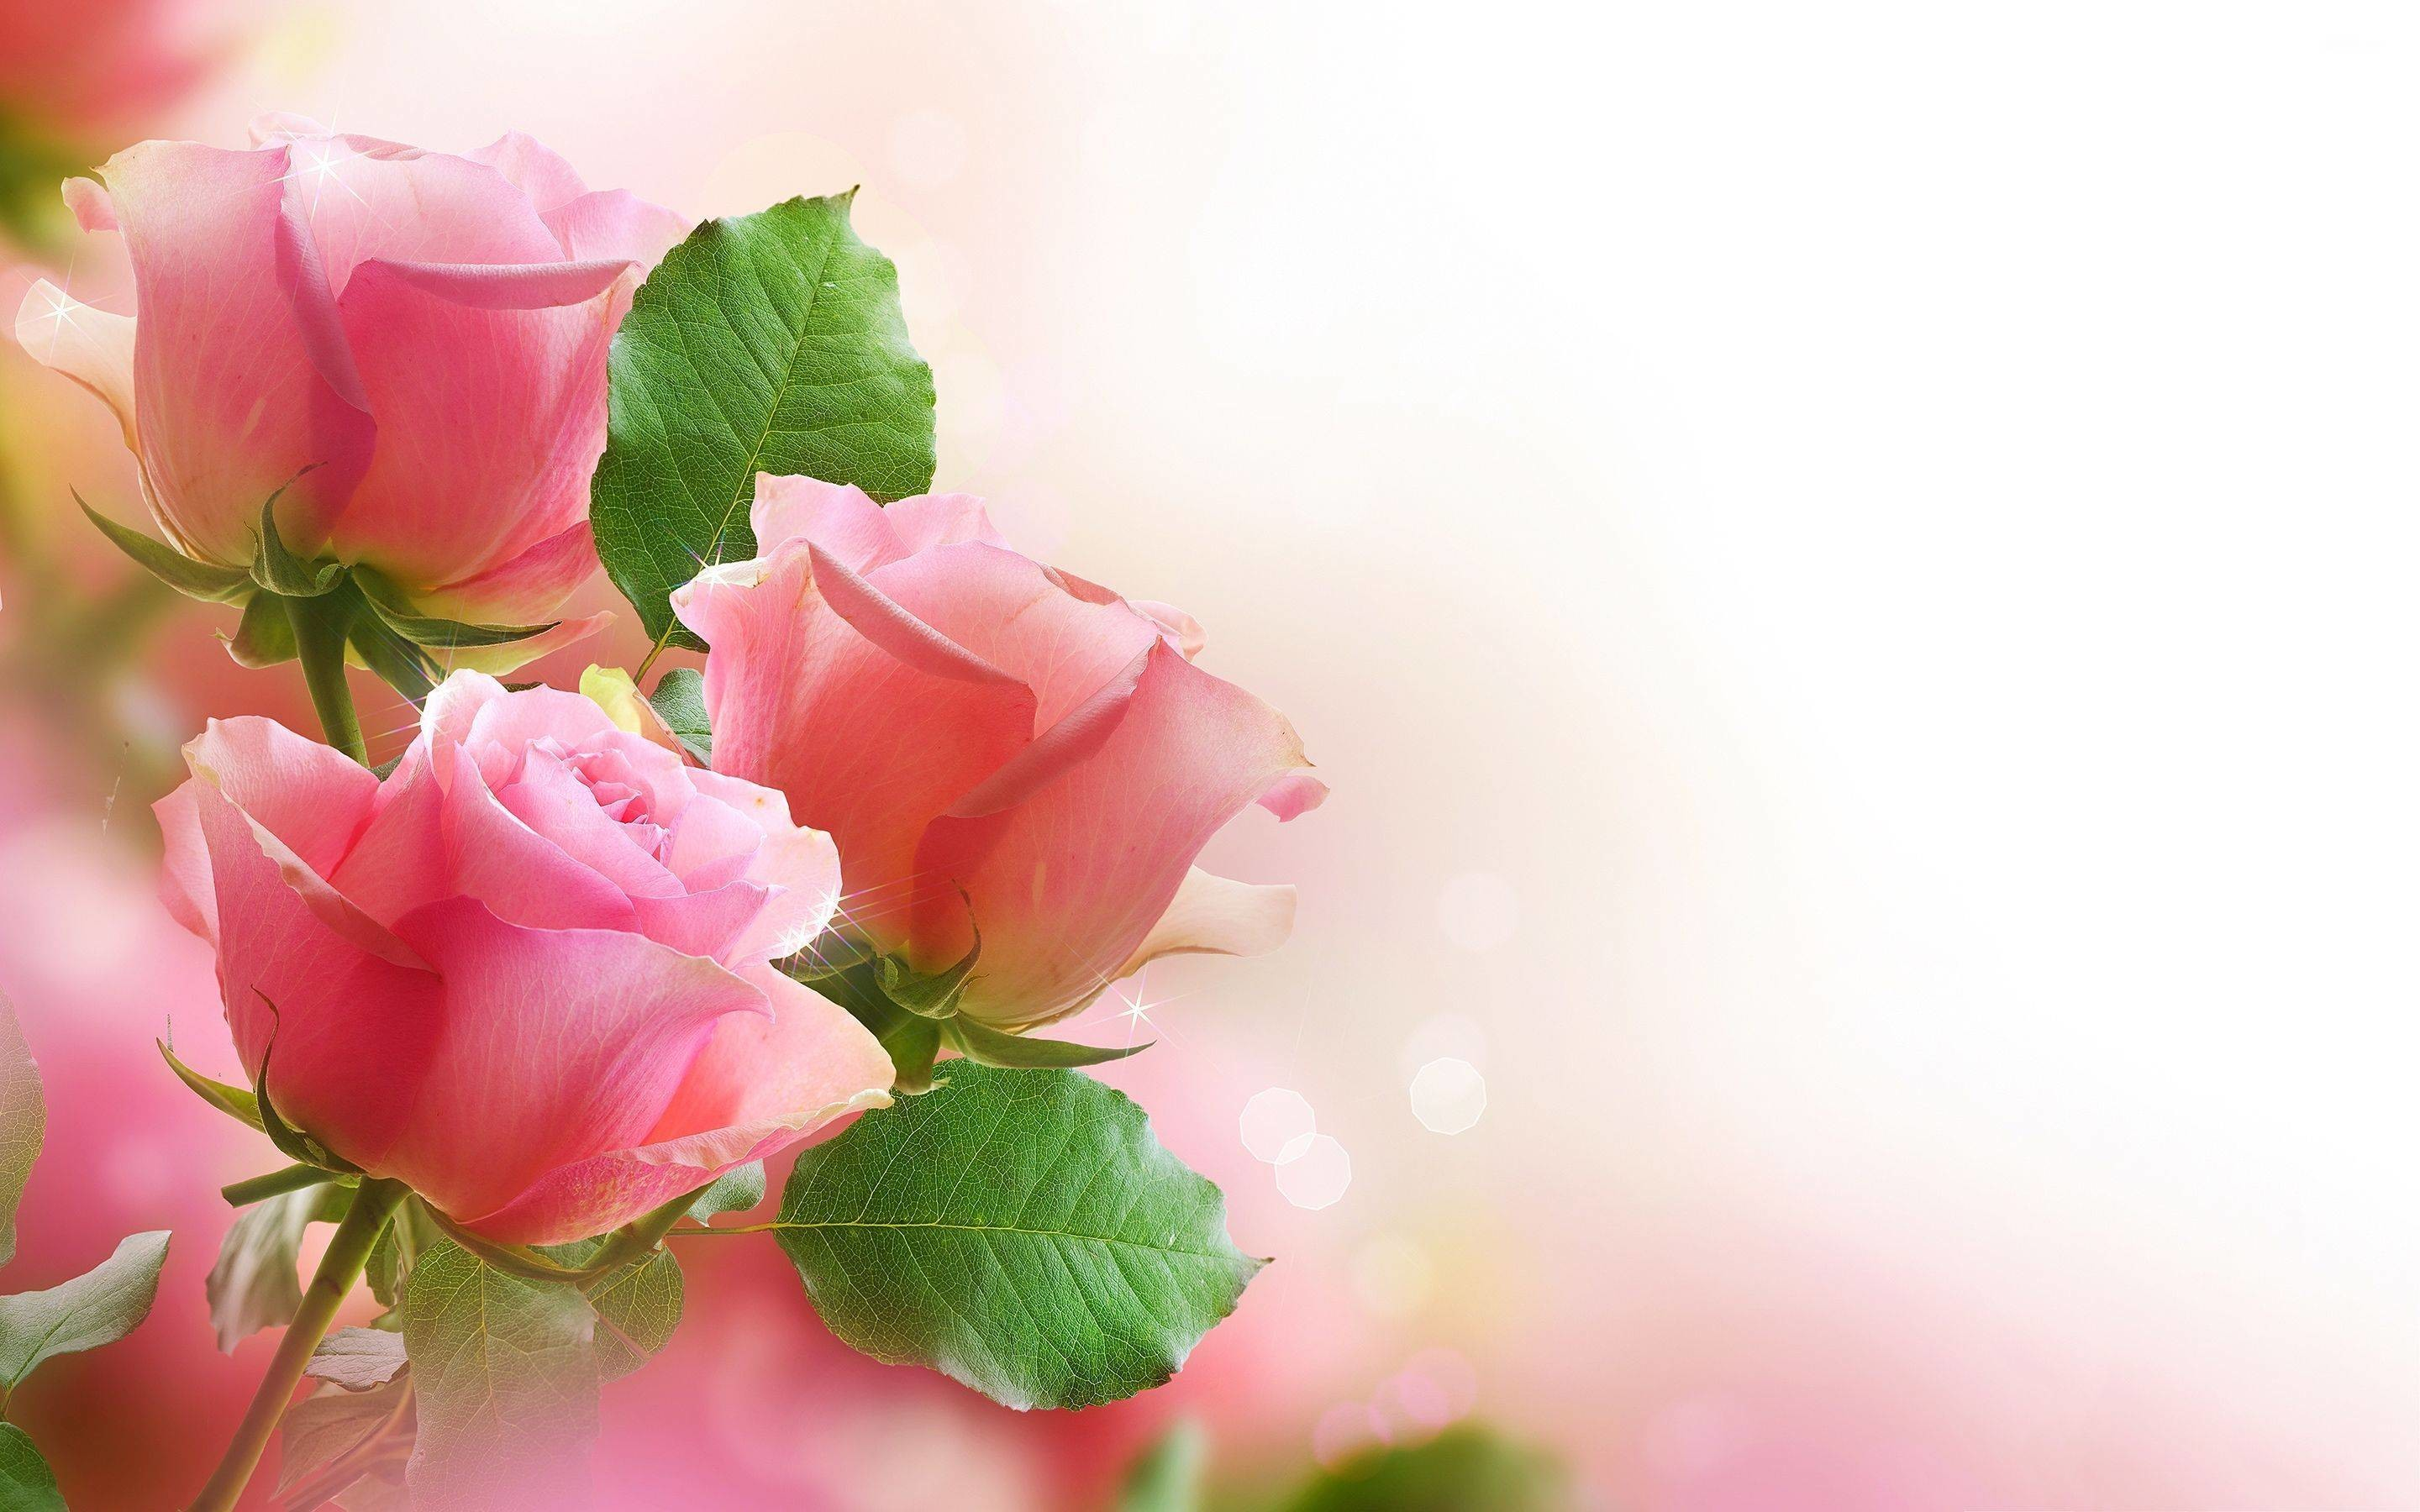 Most Beautiful Flower Wallpapers | HD Wallpapers | Pinterest | Hd wallpaper  and Wallpaper